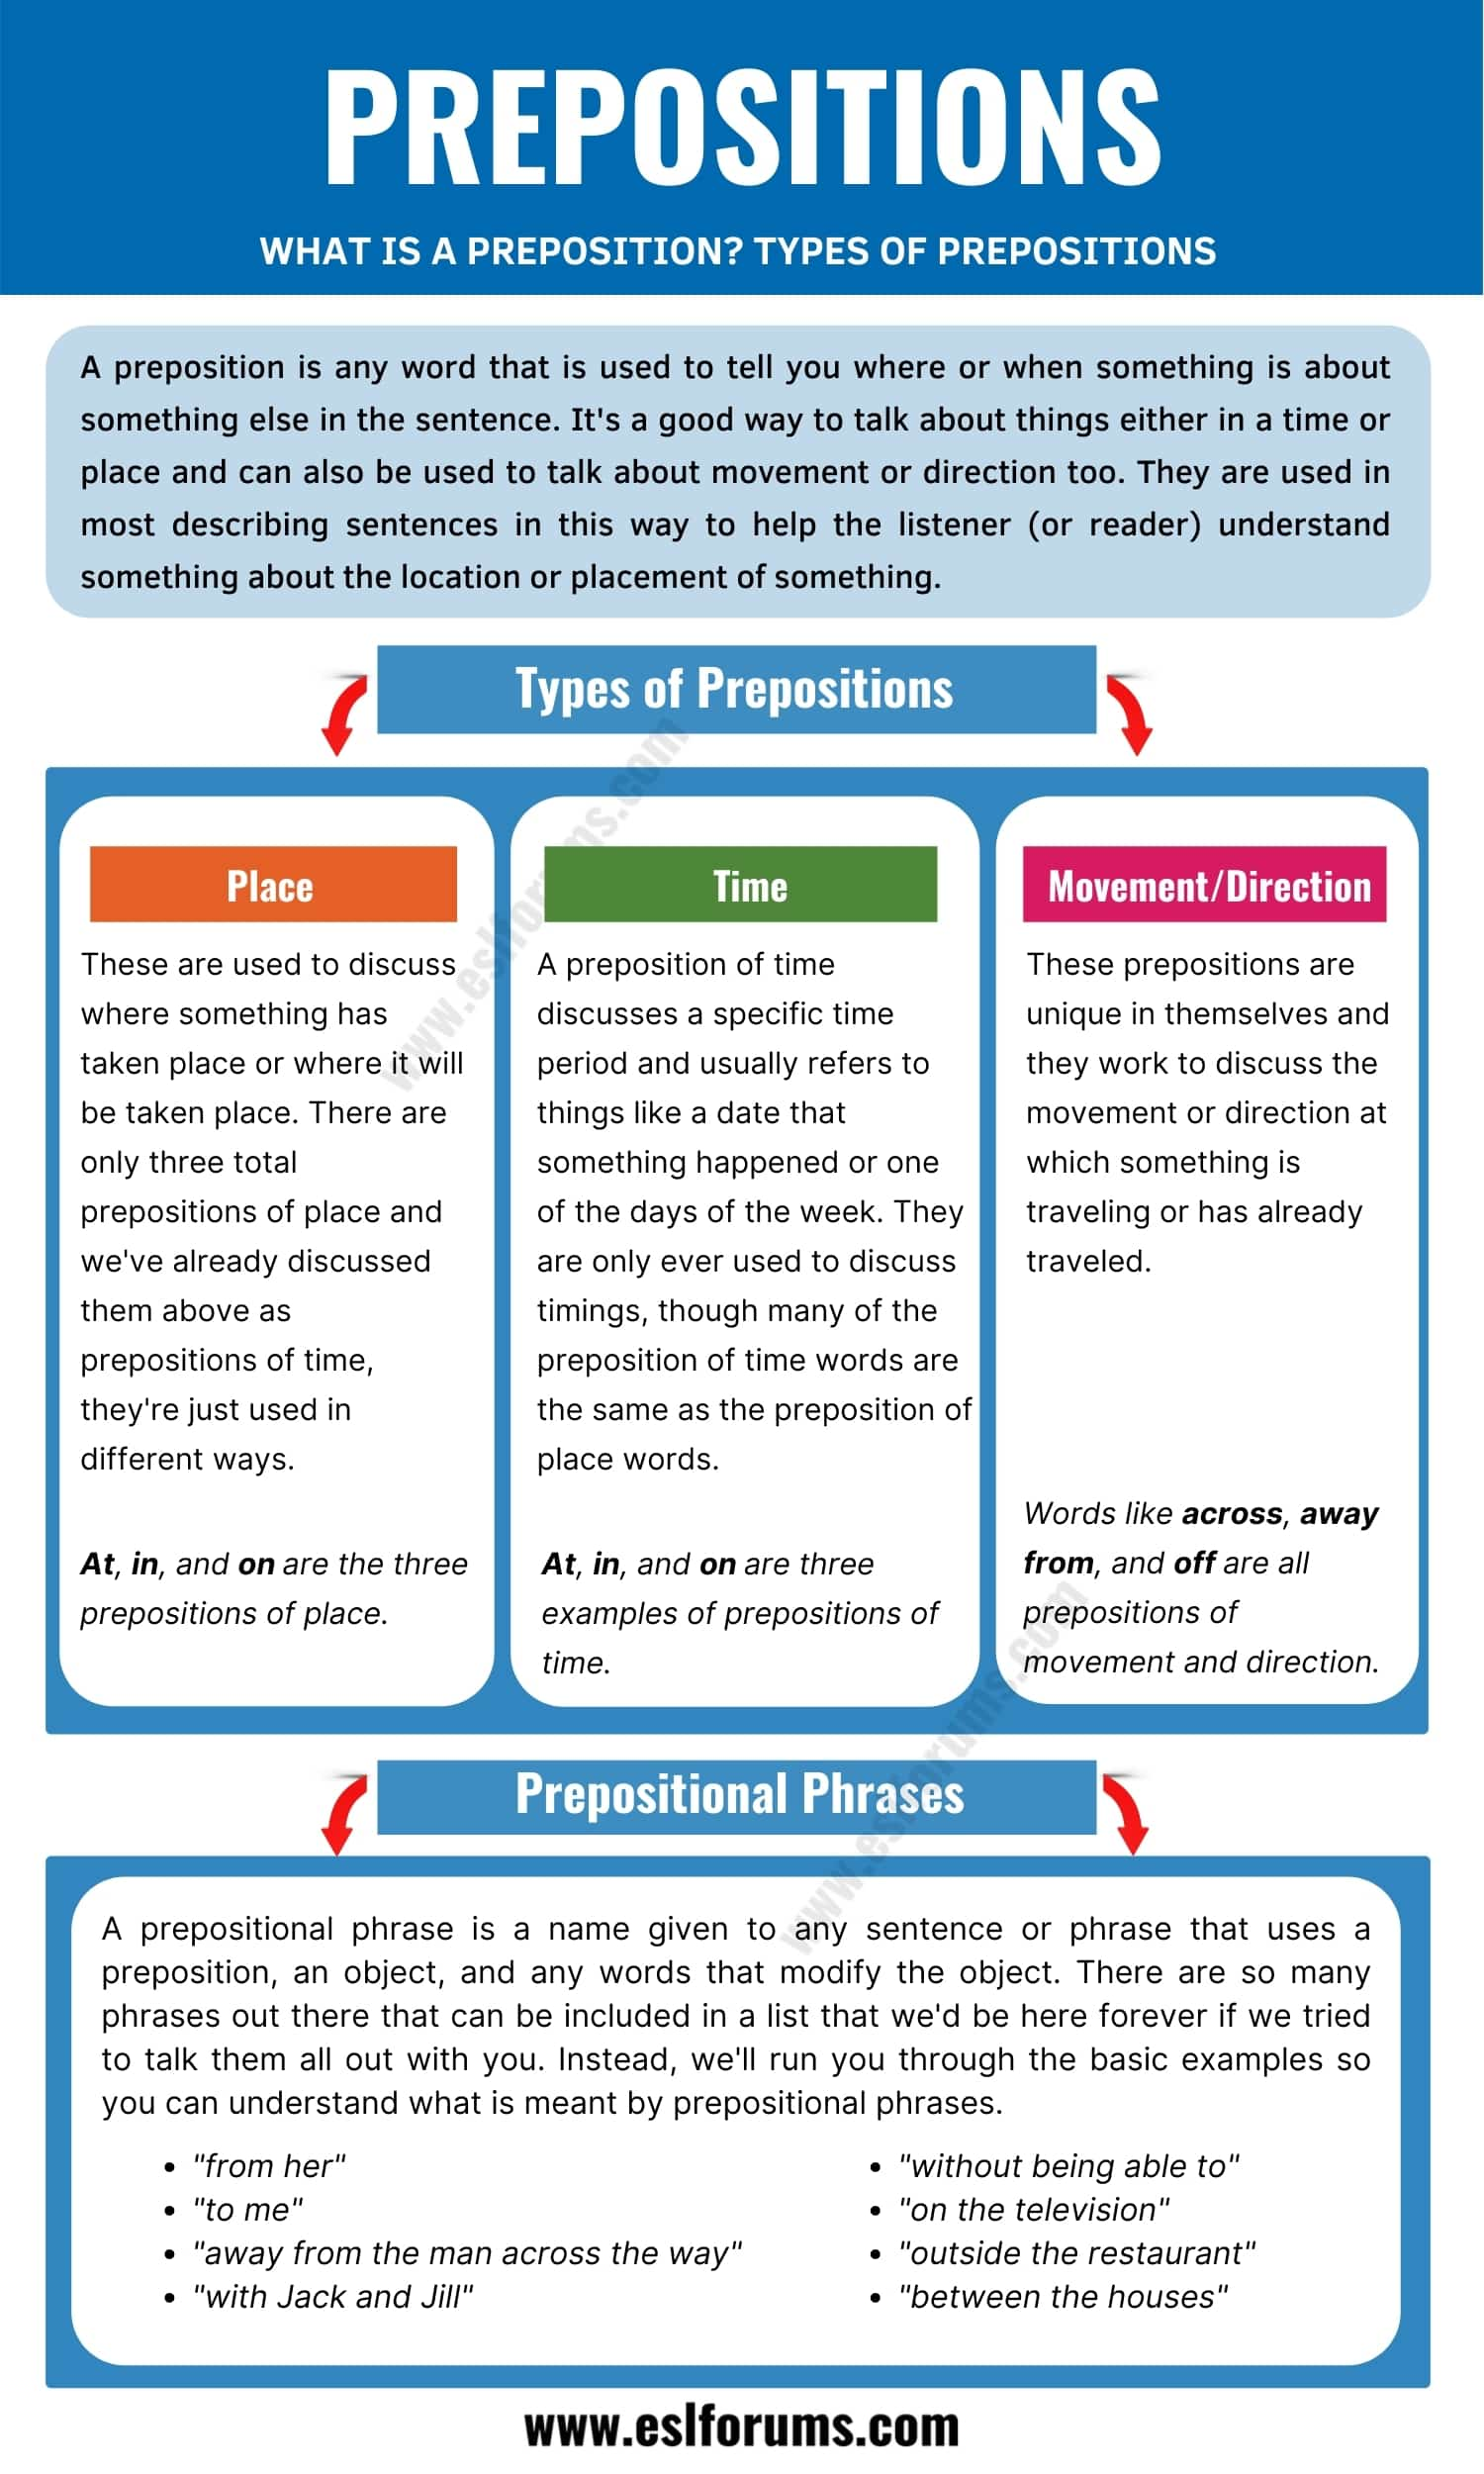 Prepositions | Types and Usage of Prepositions with Helpful Examples